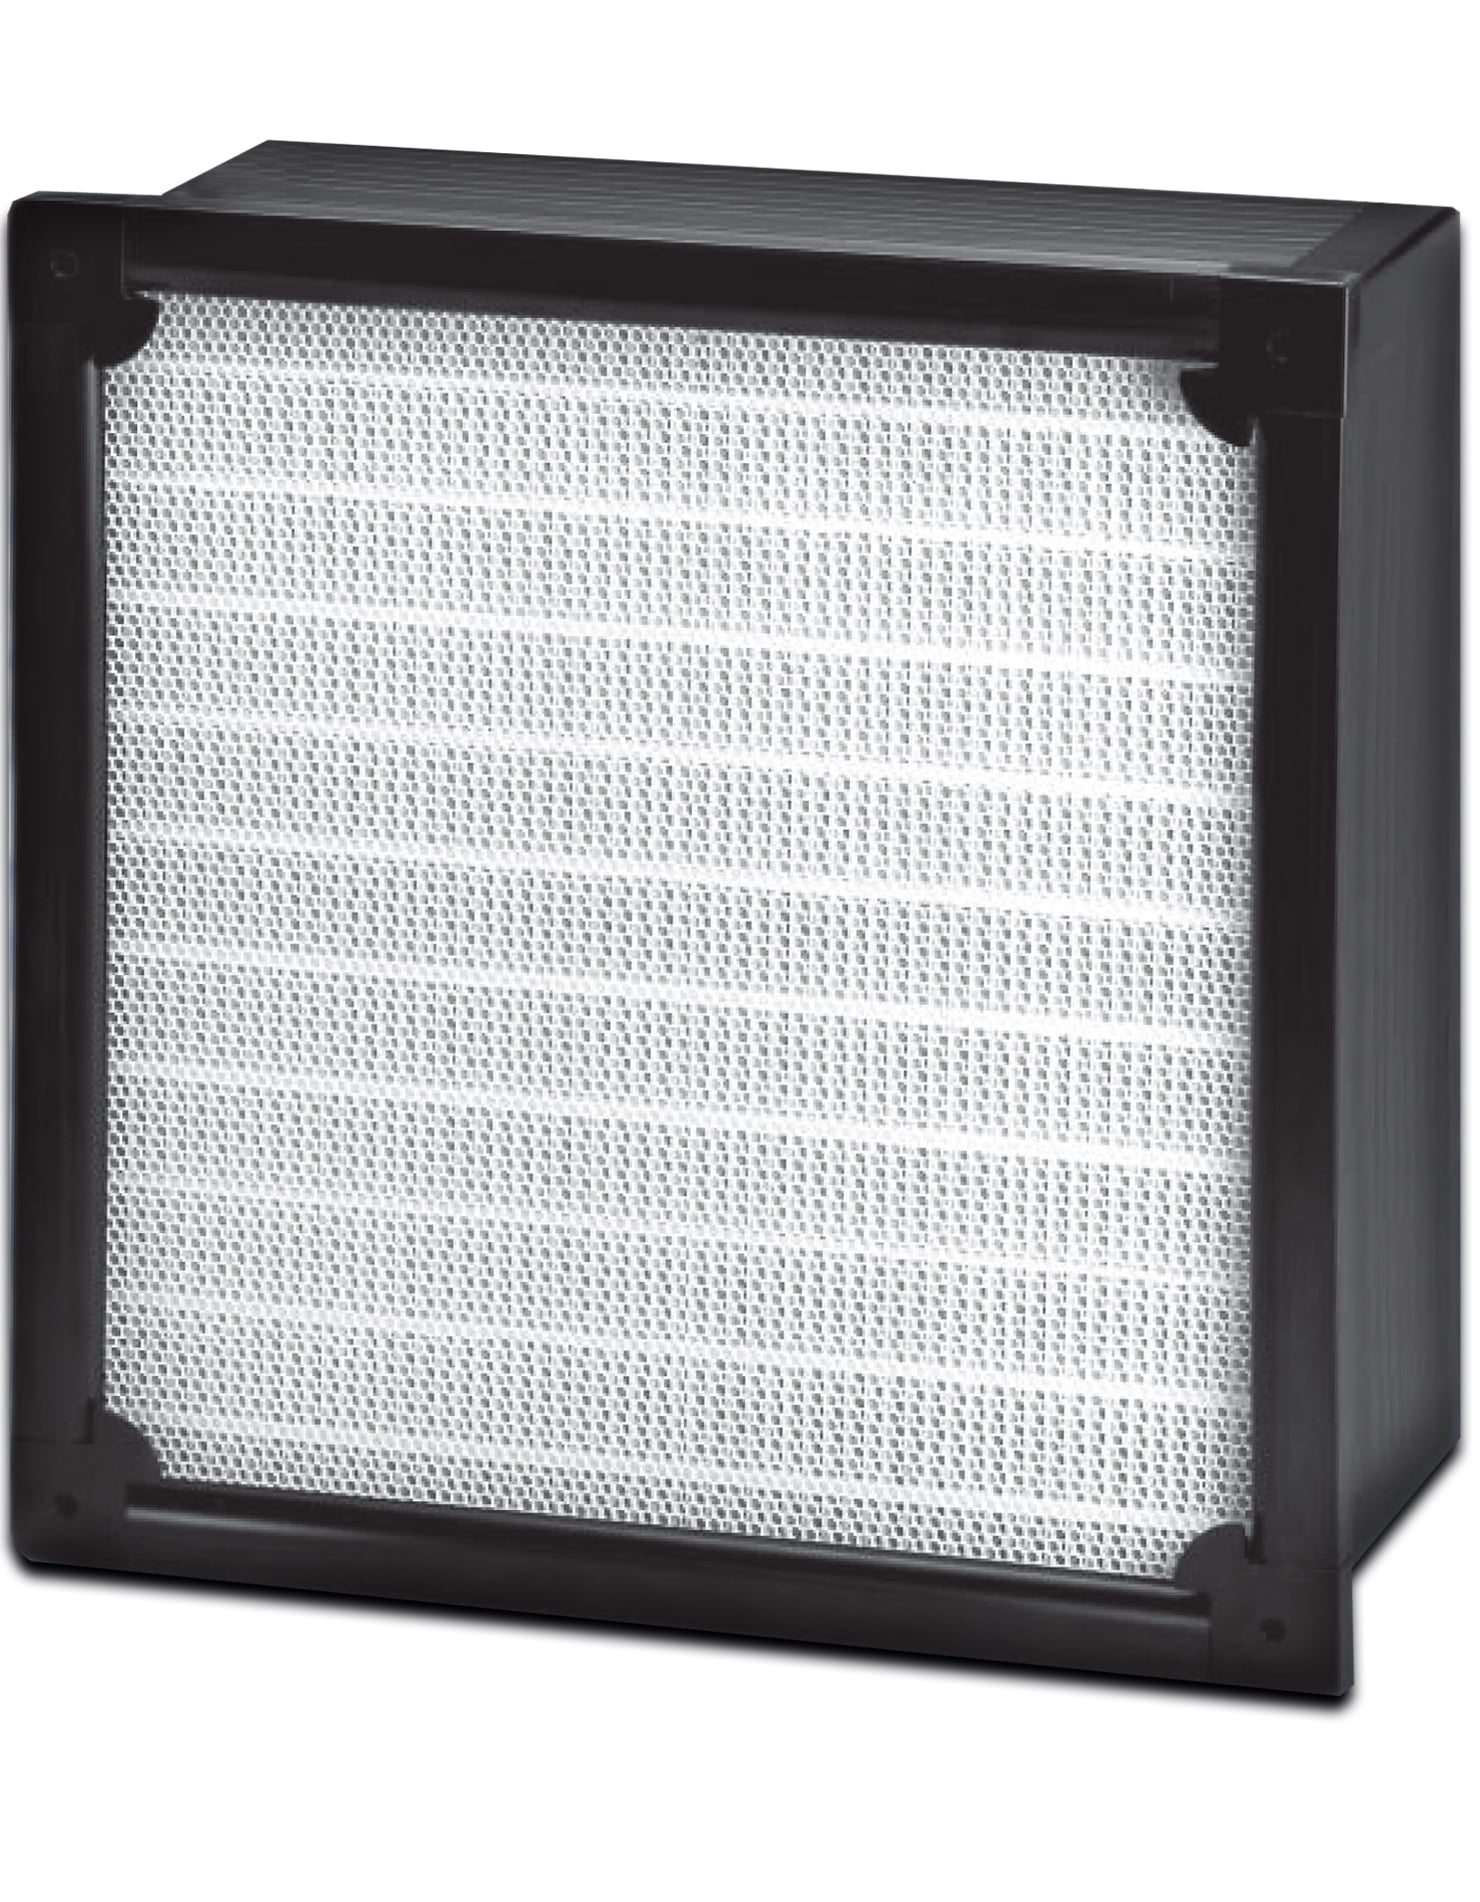 Viledon Maxi Pleat MX95 Air Filter | Industrial Air Filtration Products